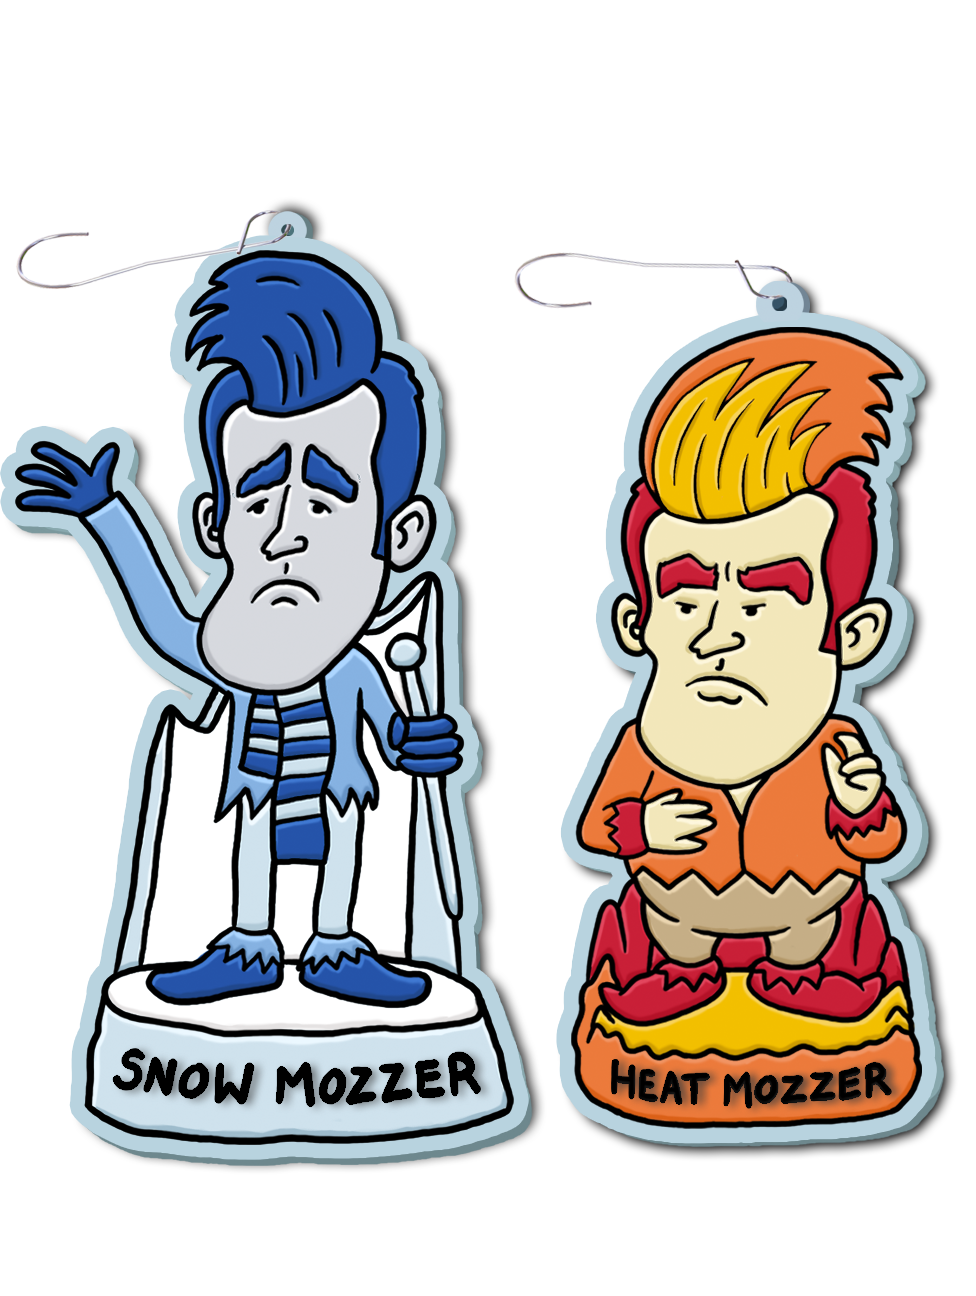 Snow Mozzer & Heat Mozzer Ornament Set